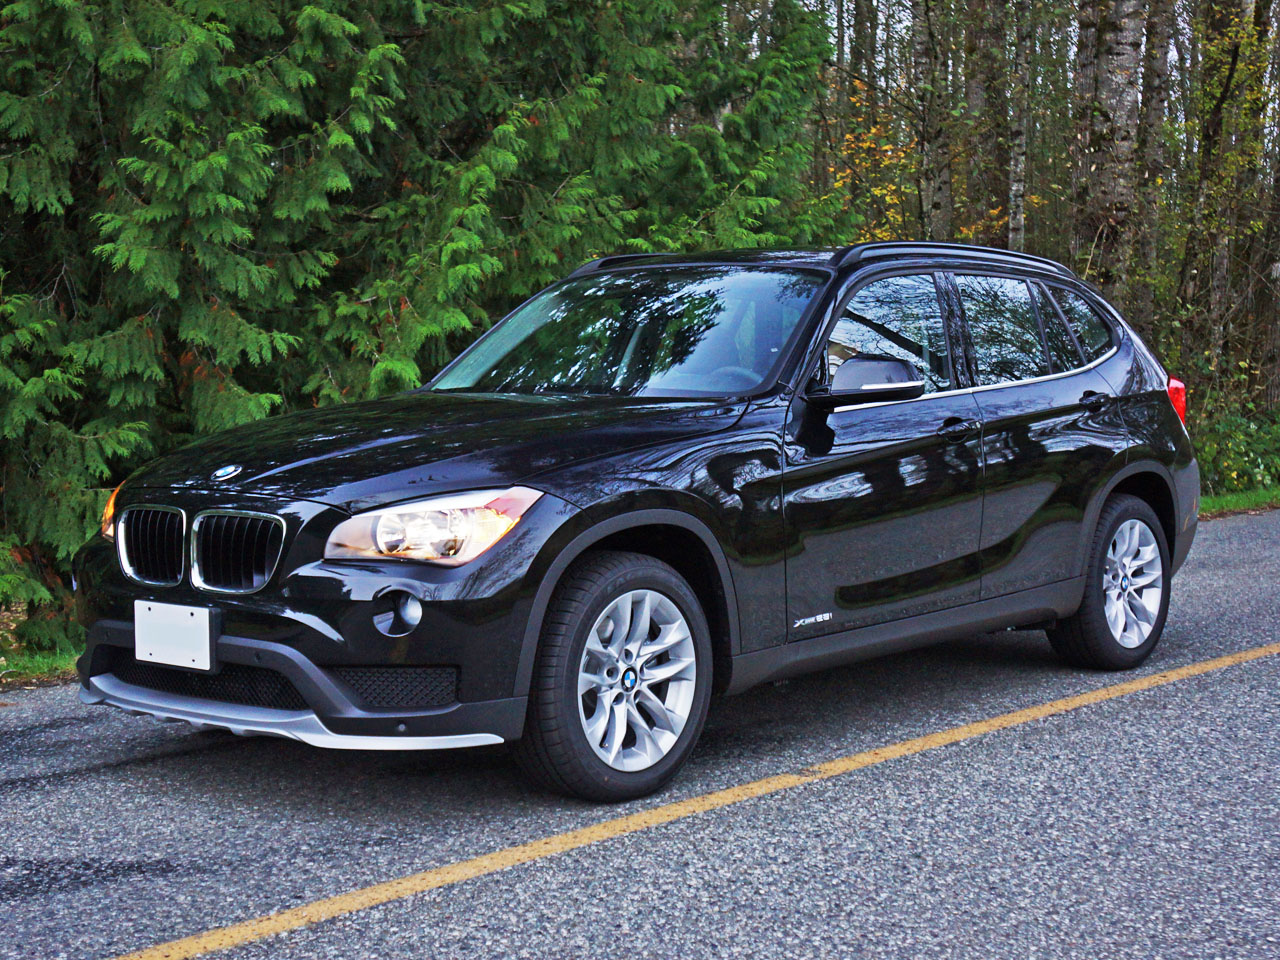 2015 bmw x1 xdrive28i road test review carcostcanada. Black Bedroom Furniture Sets. Home Design Ideas